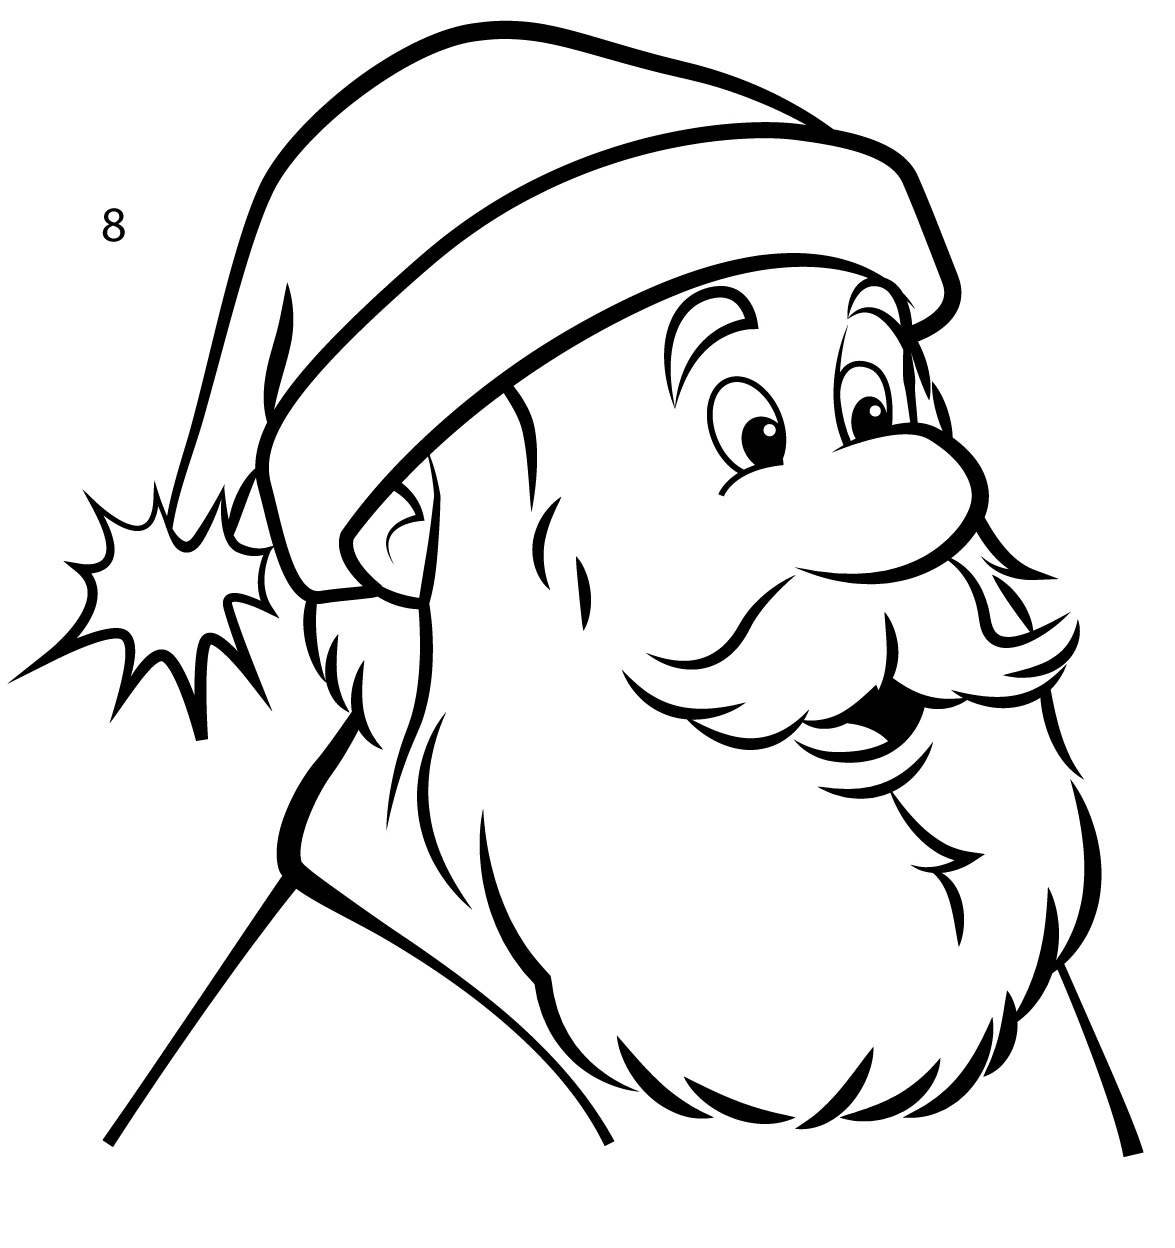 1175x1248 How To Draw Santa Claus In 8 Easy Steps